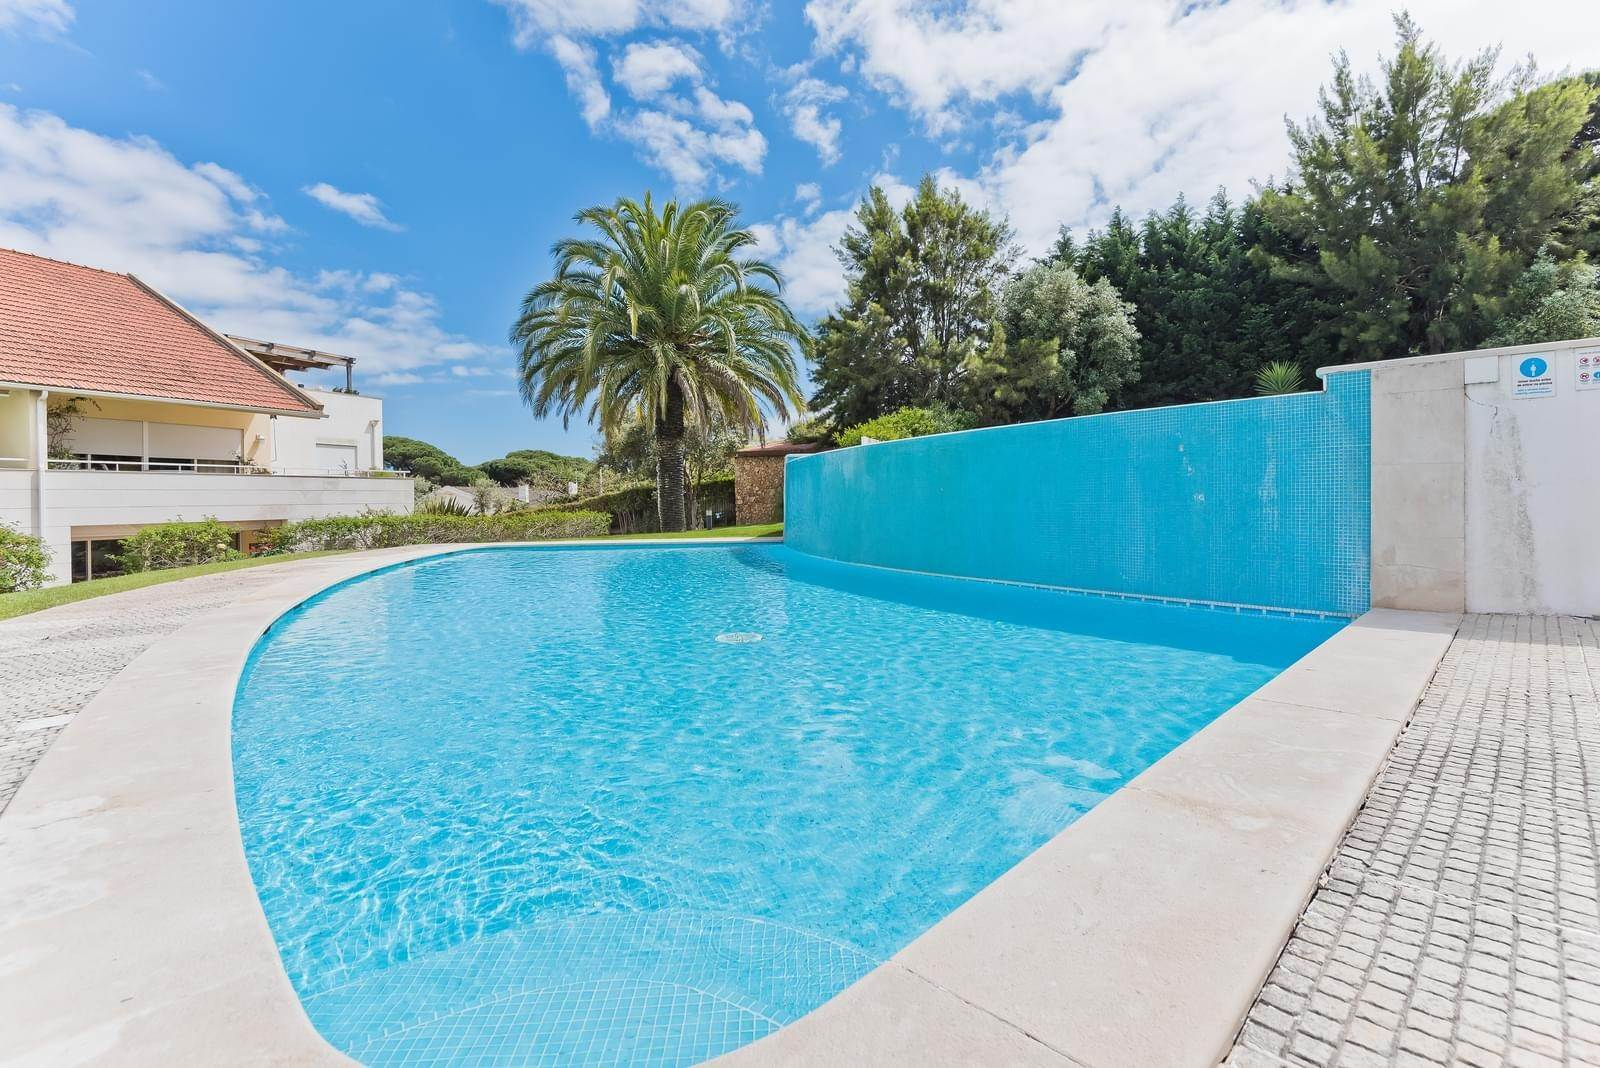 24. Appartamenti per Vendita alle ore 3+1 bedroom apartment in Bicesse, Cascais, placed in a private condominium.The apartment, with 215 sqm and a 111 sqm ter... Cascais, Portogallo